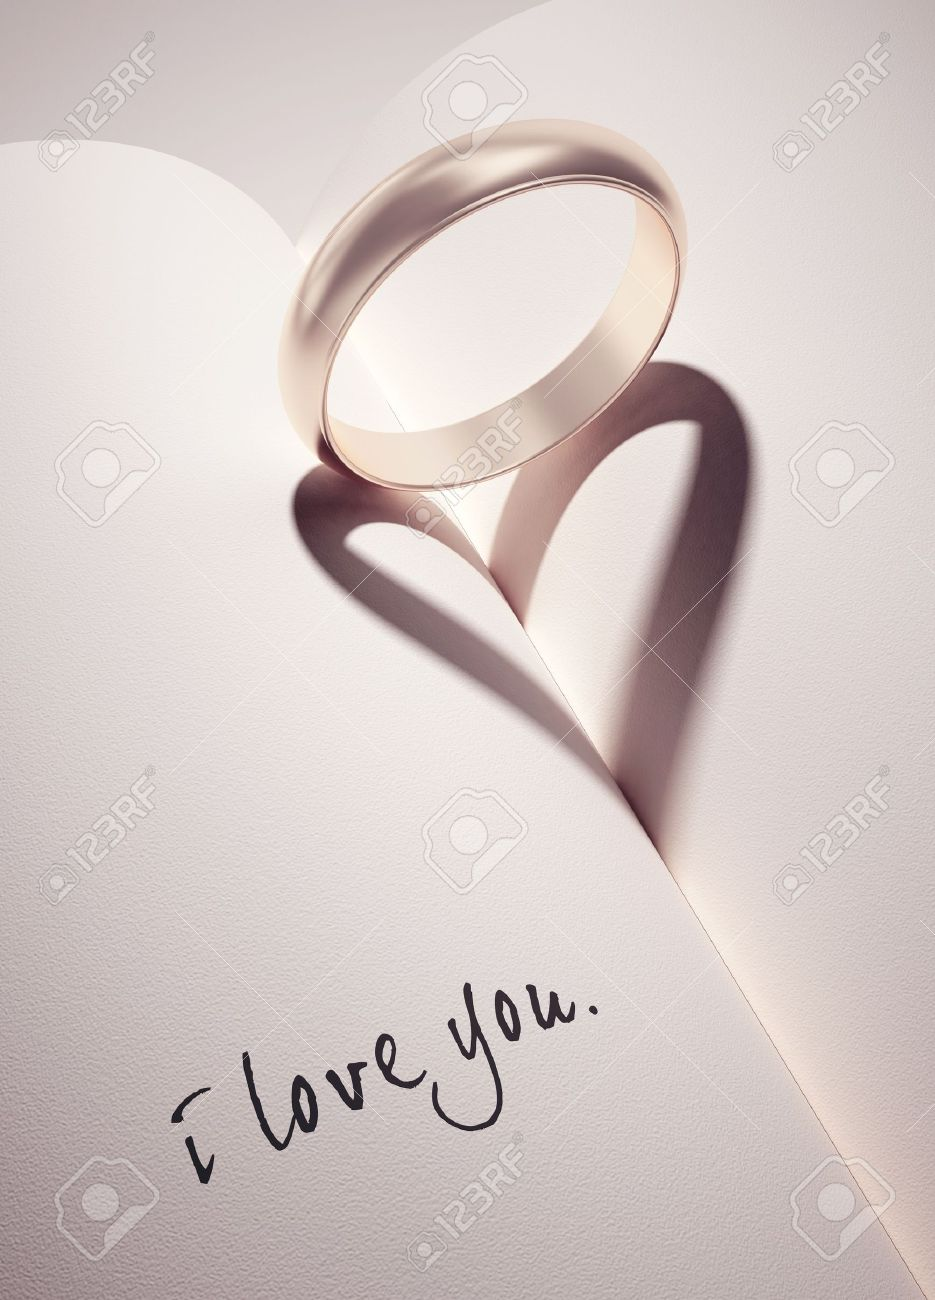 heartshadow with rings on a book middle - i love you - card Stock Photo - 10785017